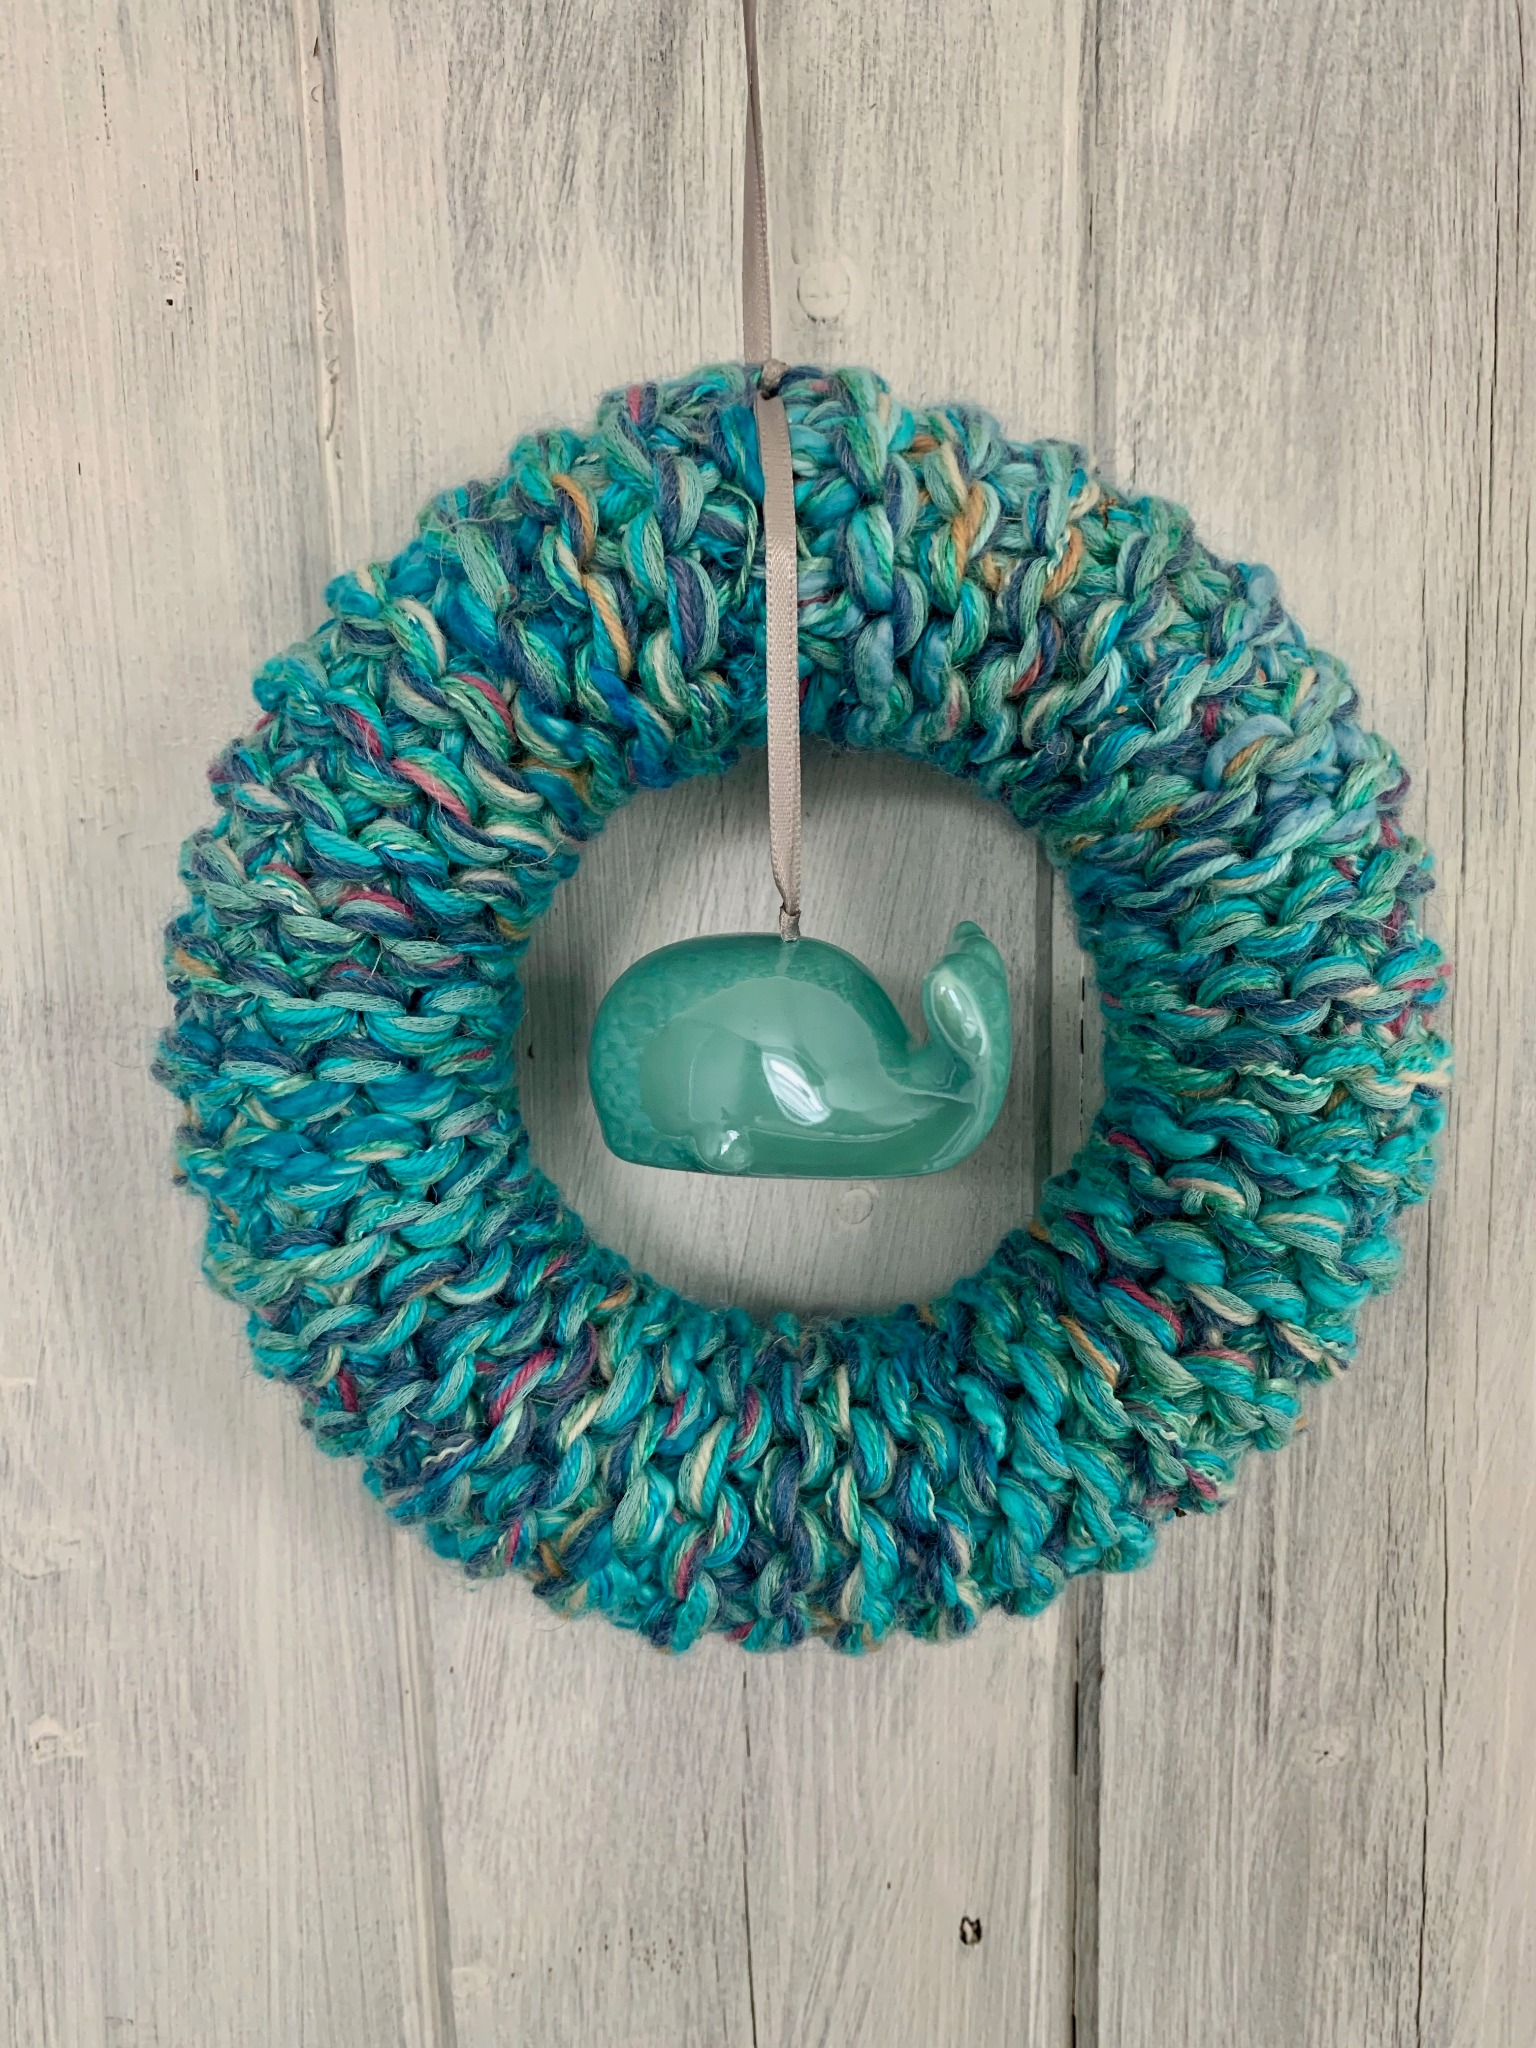 Turquoise Knitted Whale Ring